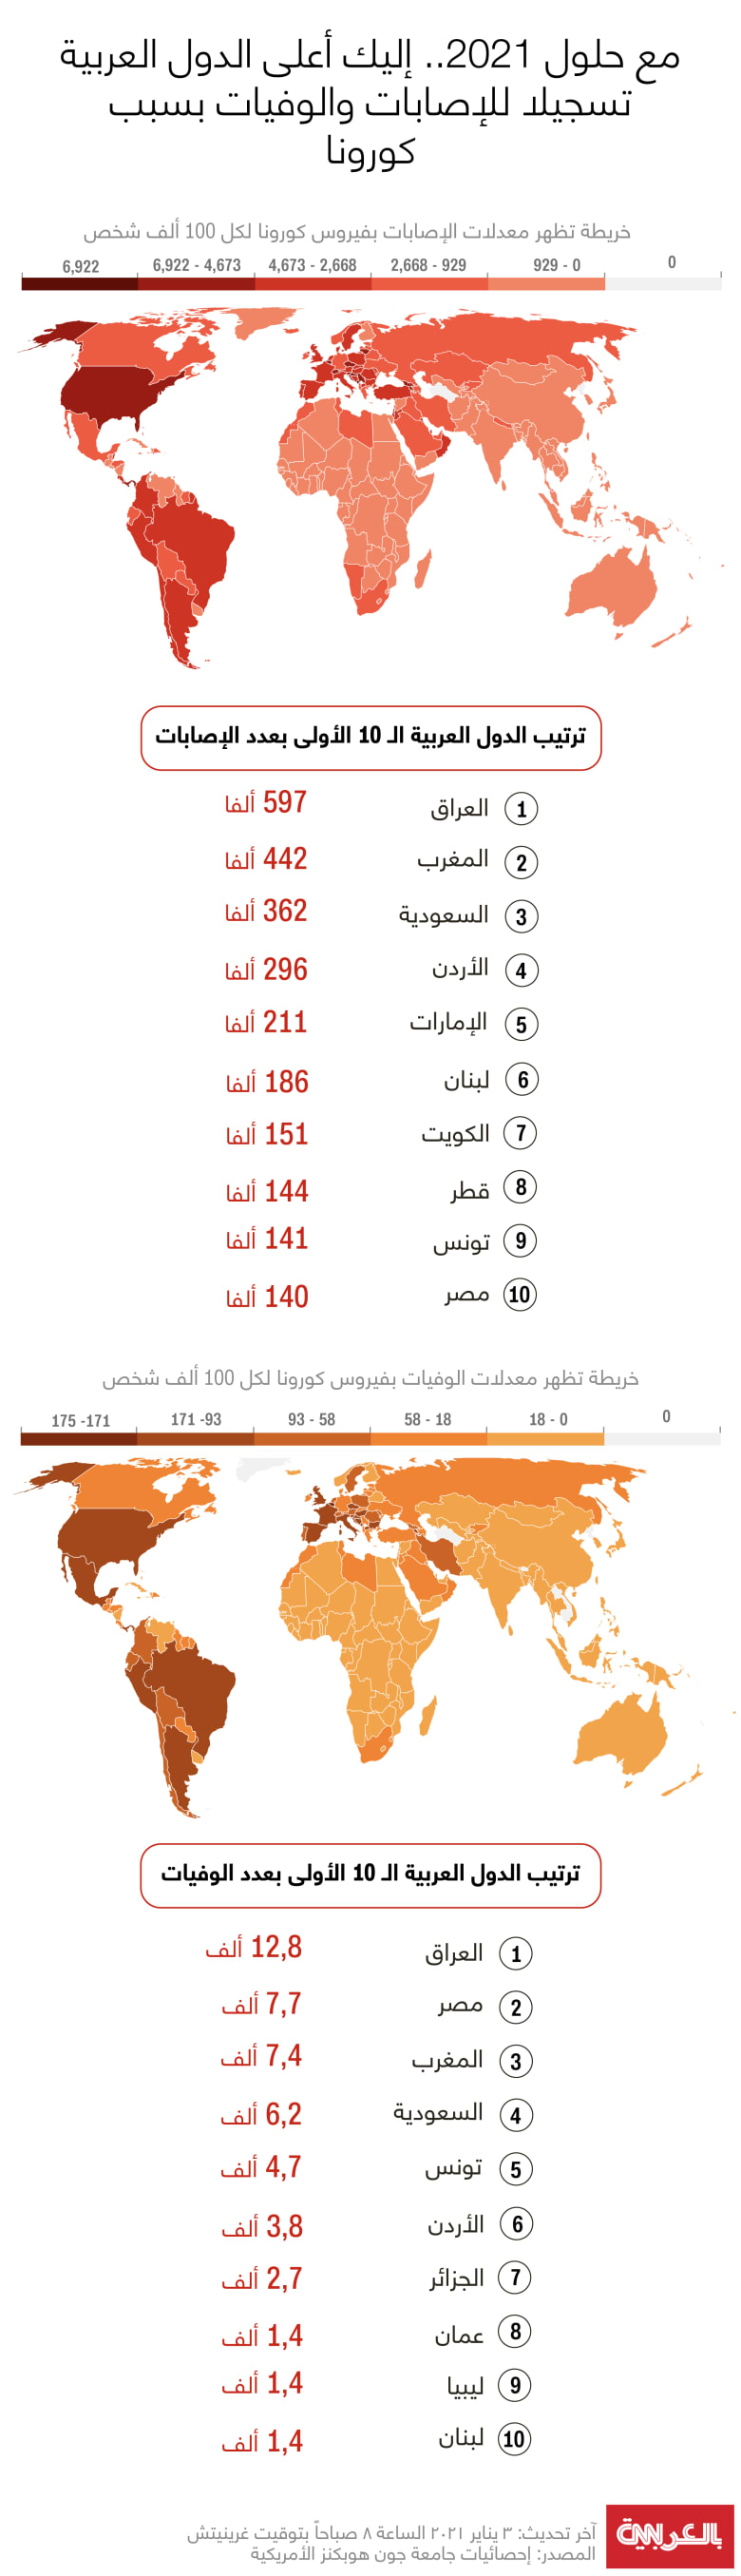 arab-countries-infections-deaths-3-jan